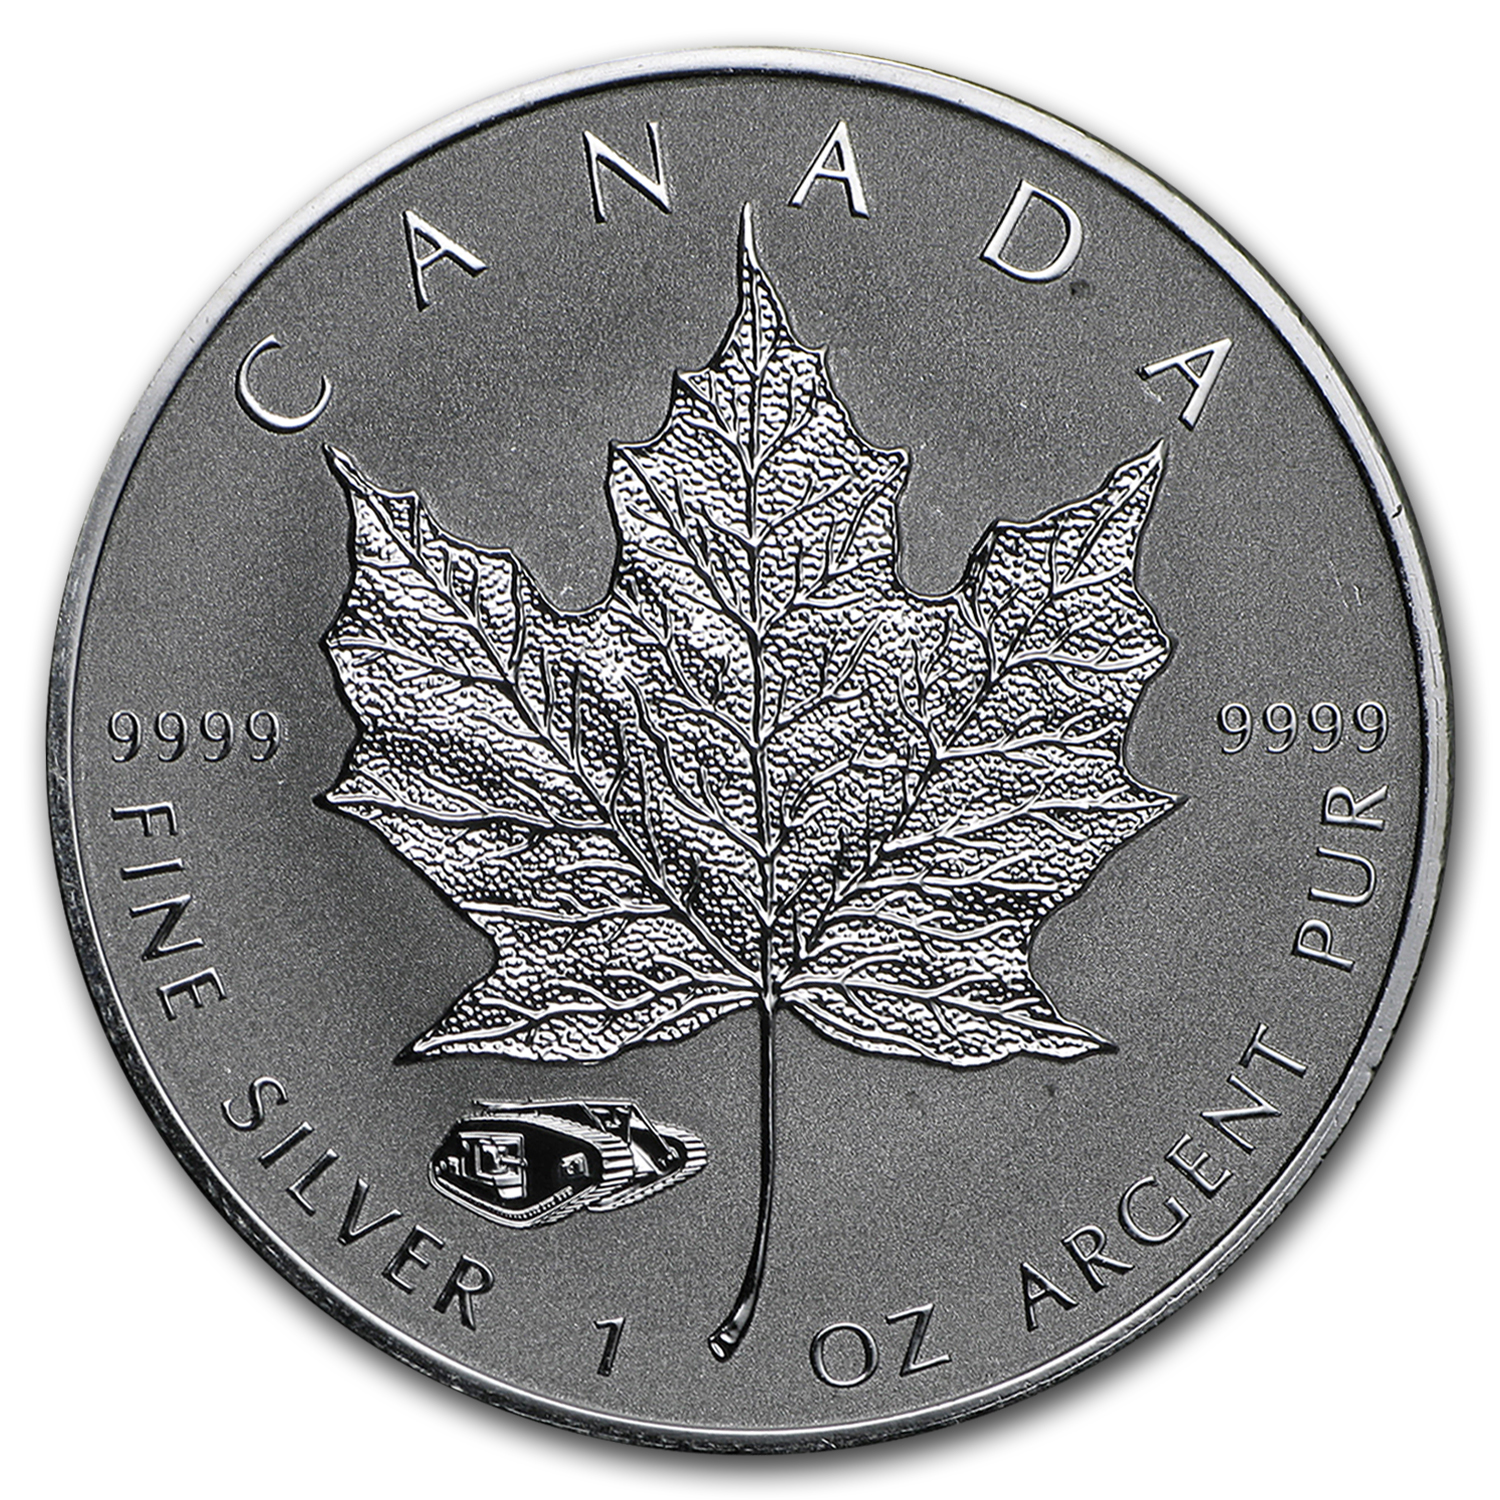 2016 Canada 1 oz Silver Maple Leaf Mark V Tank Privy